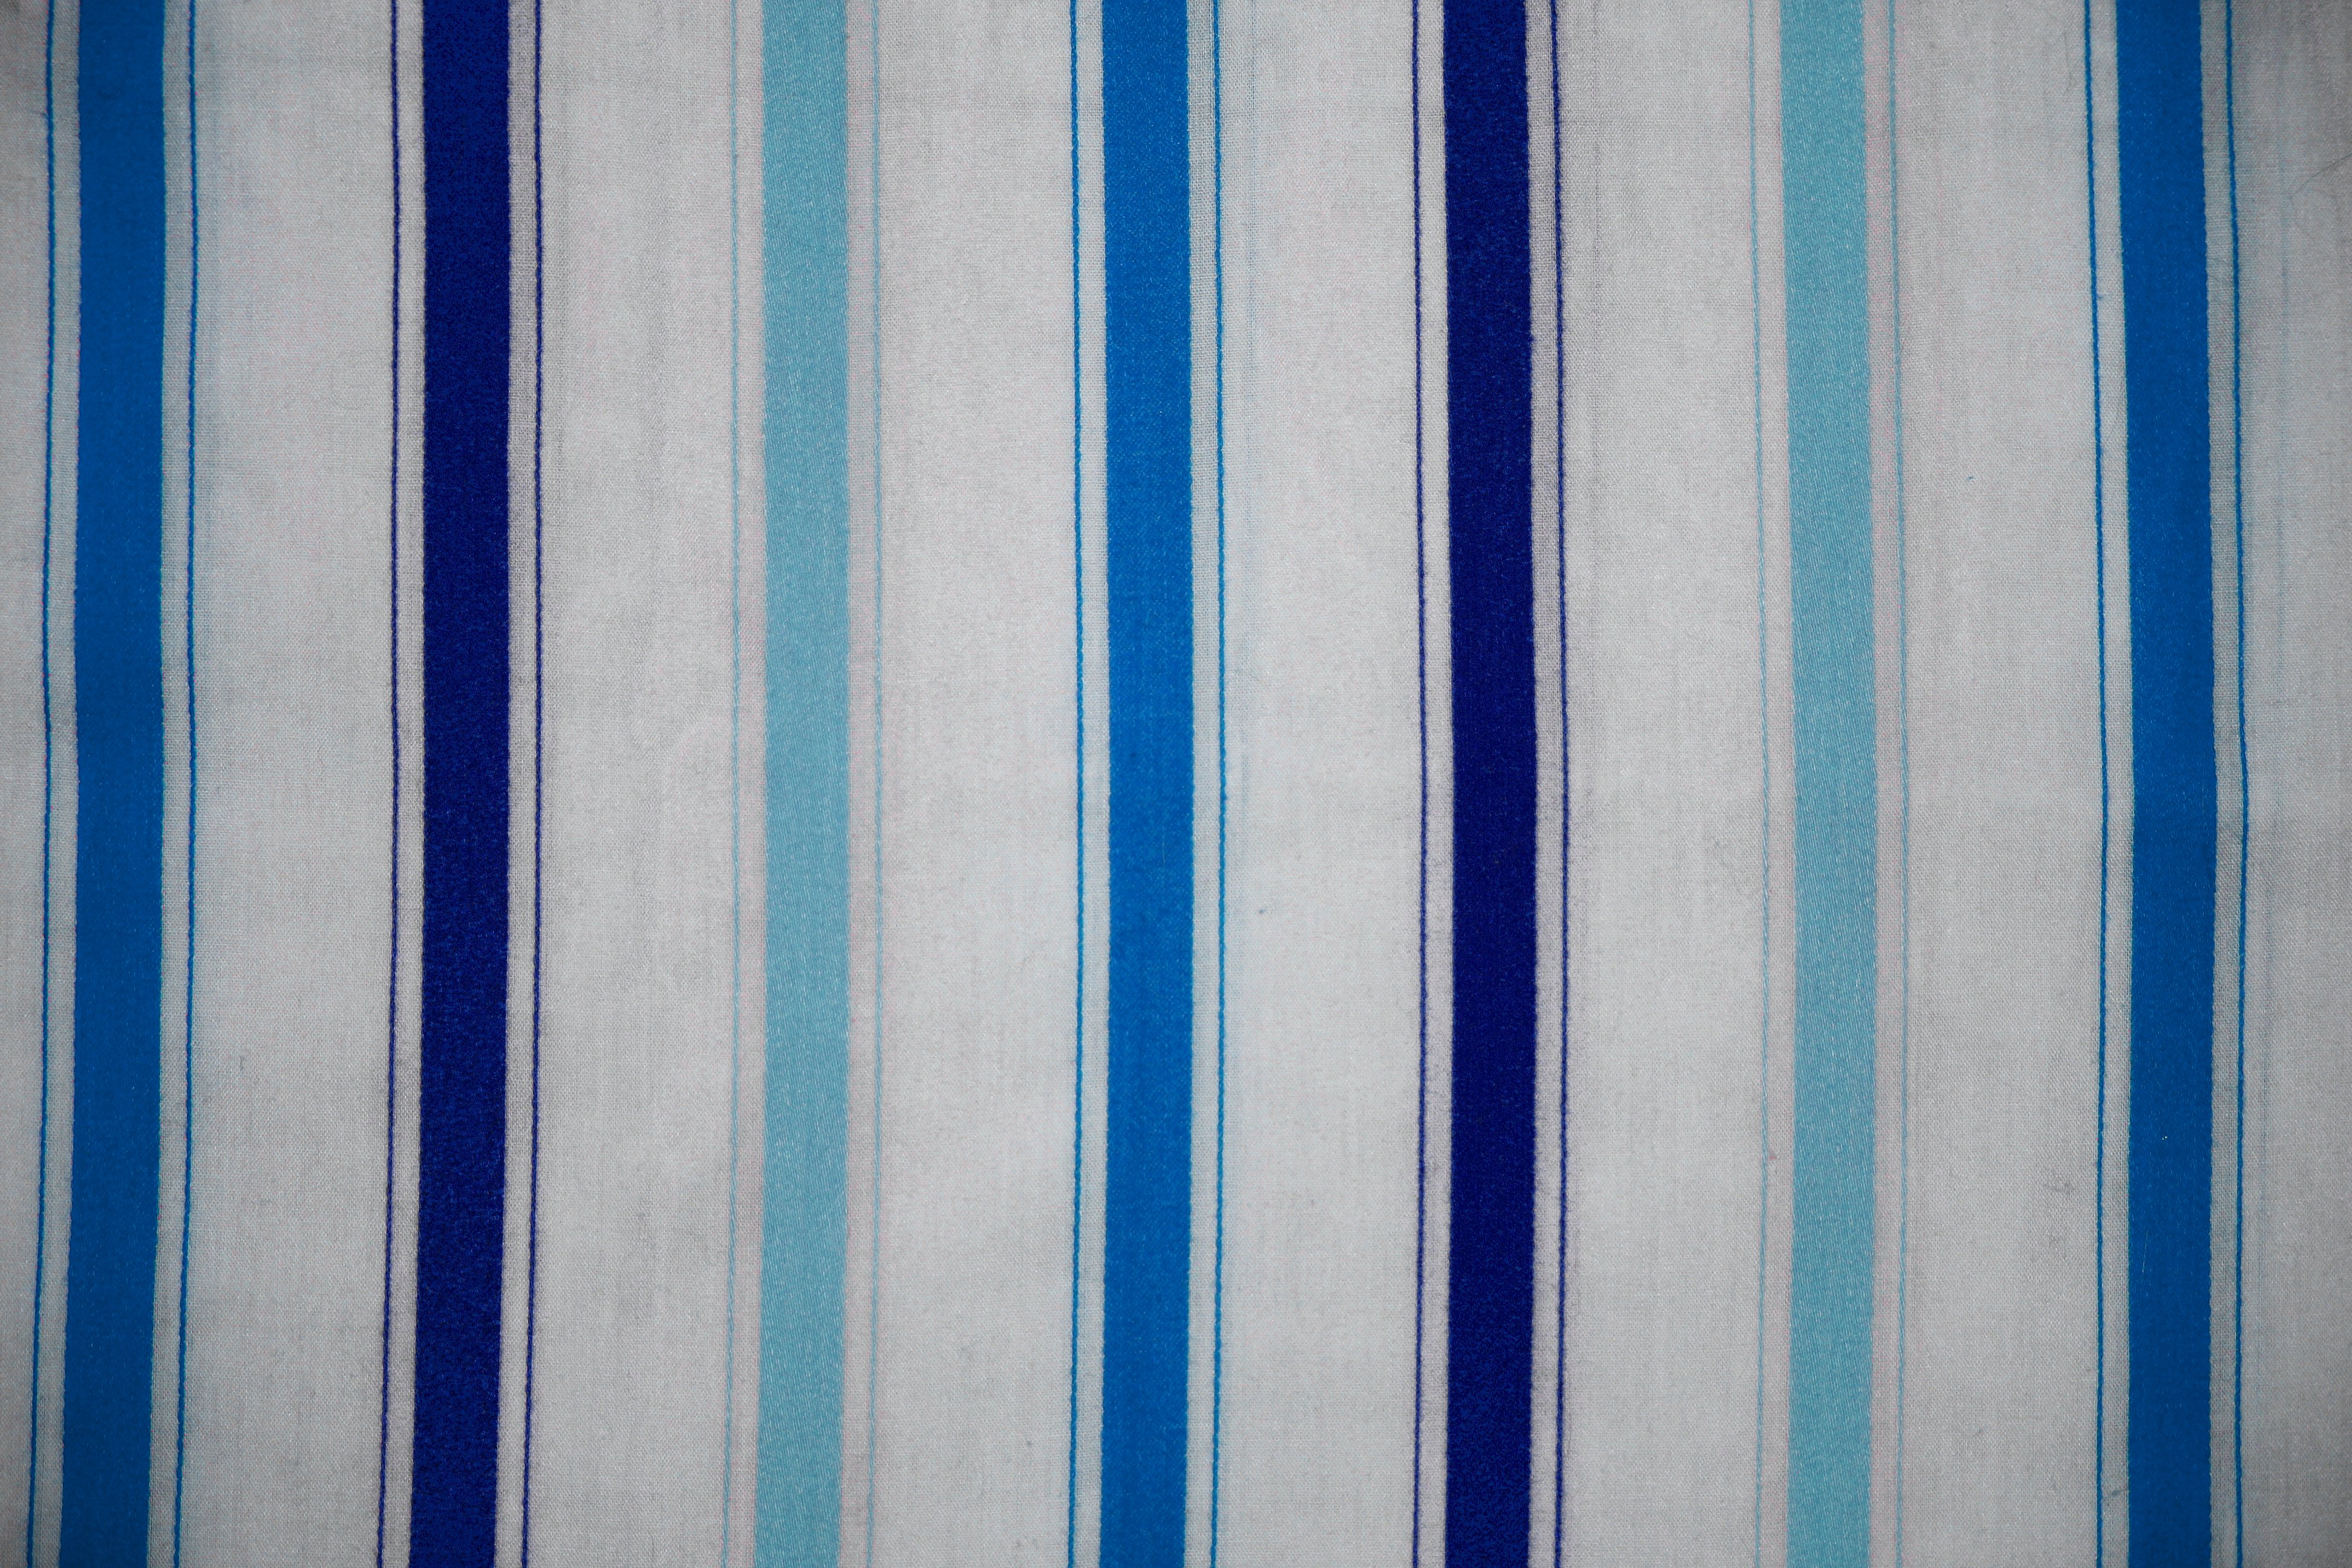 Striped Fabric Texture Blue On White